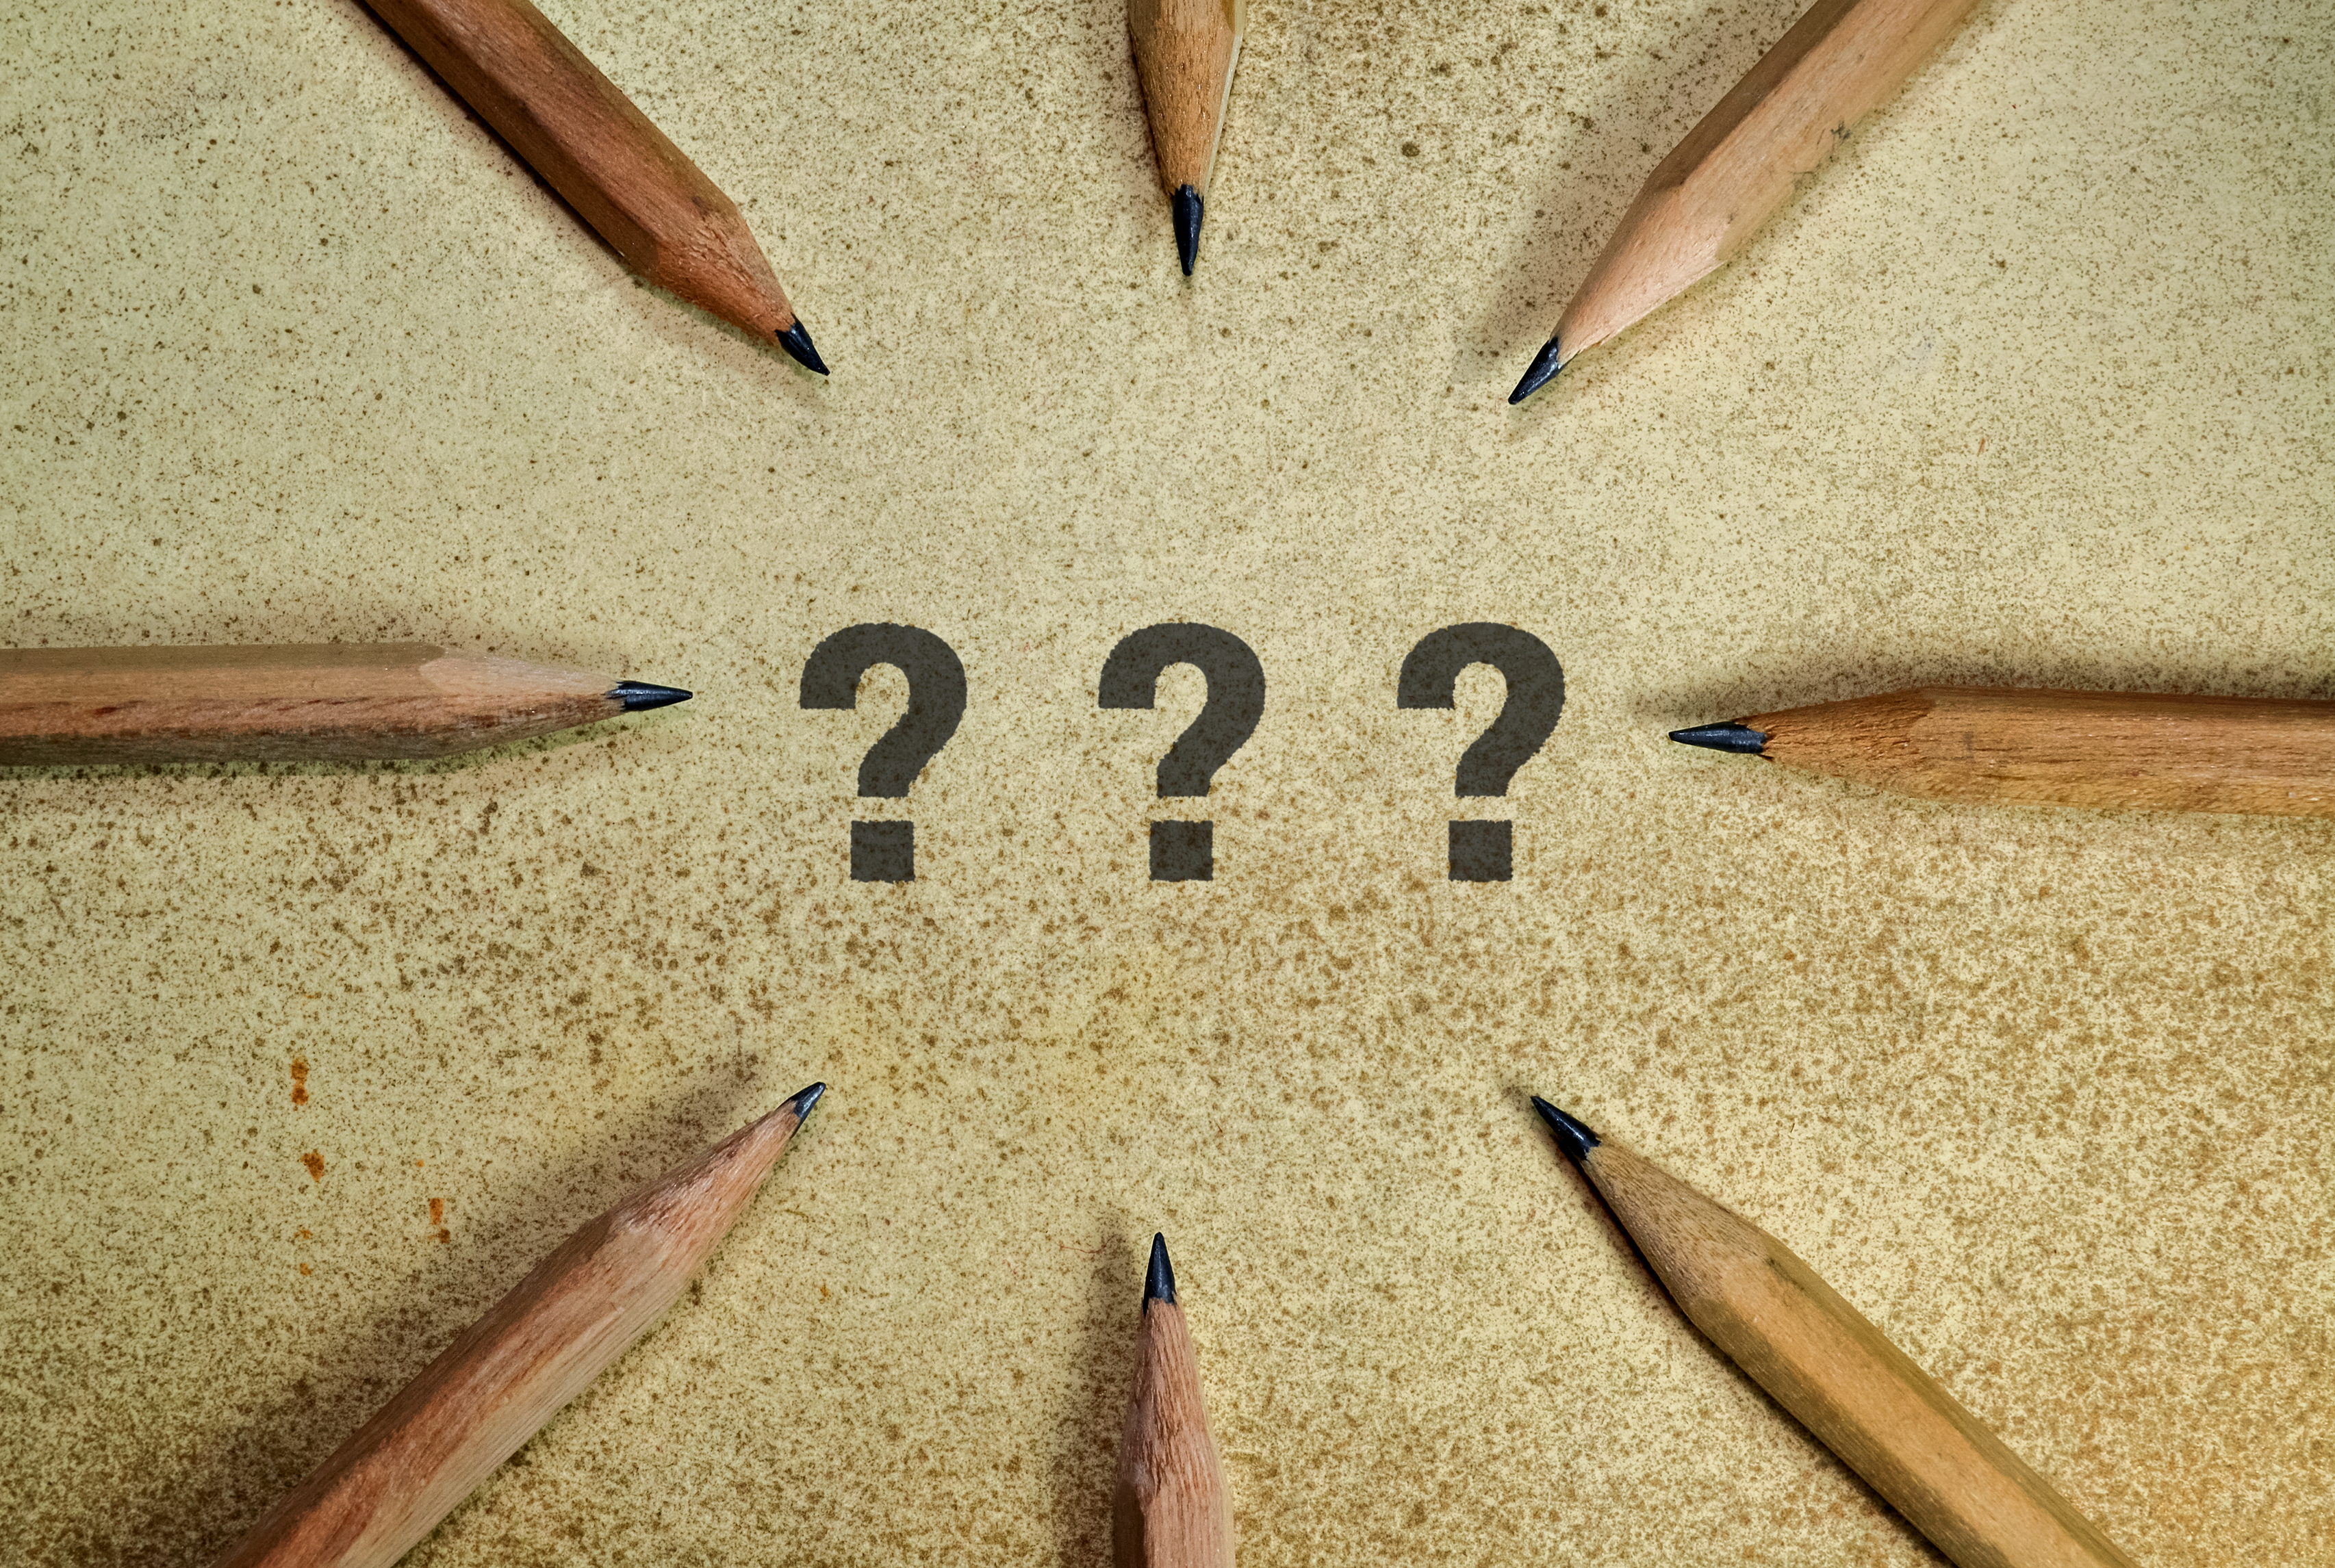 Three question marks surrounded by pencils on grunge background